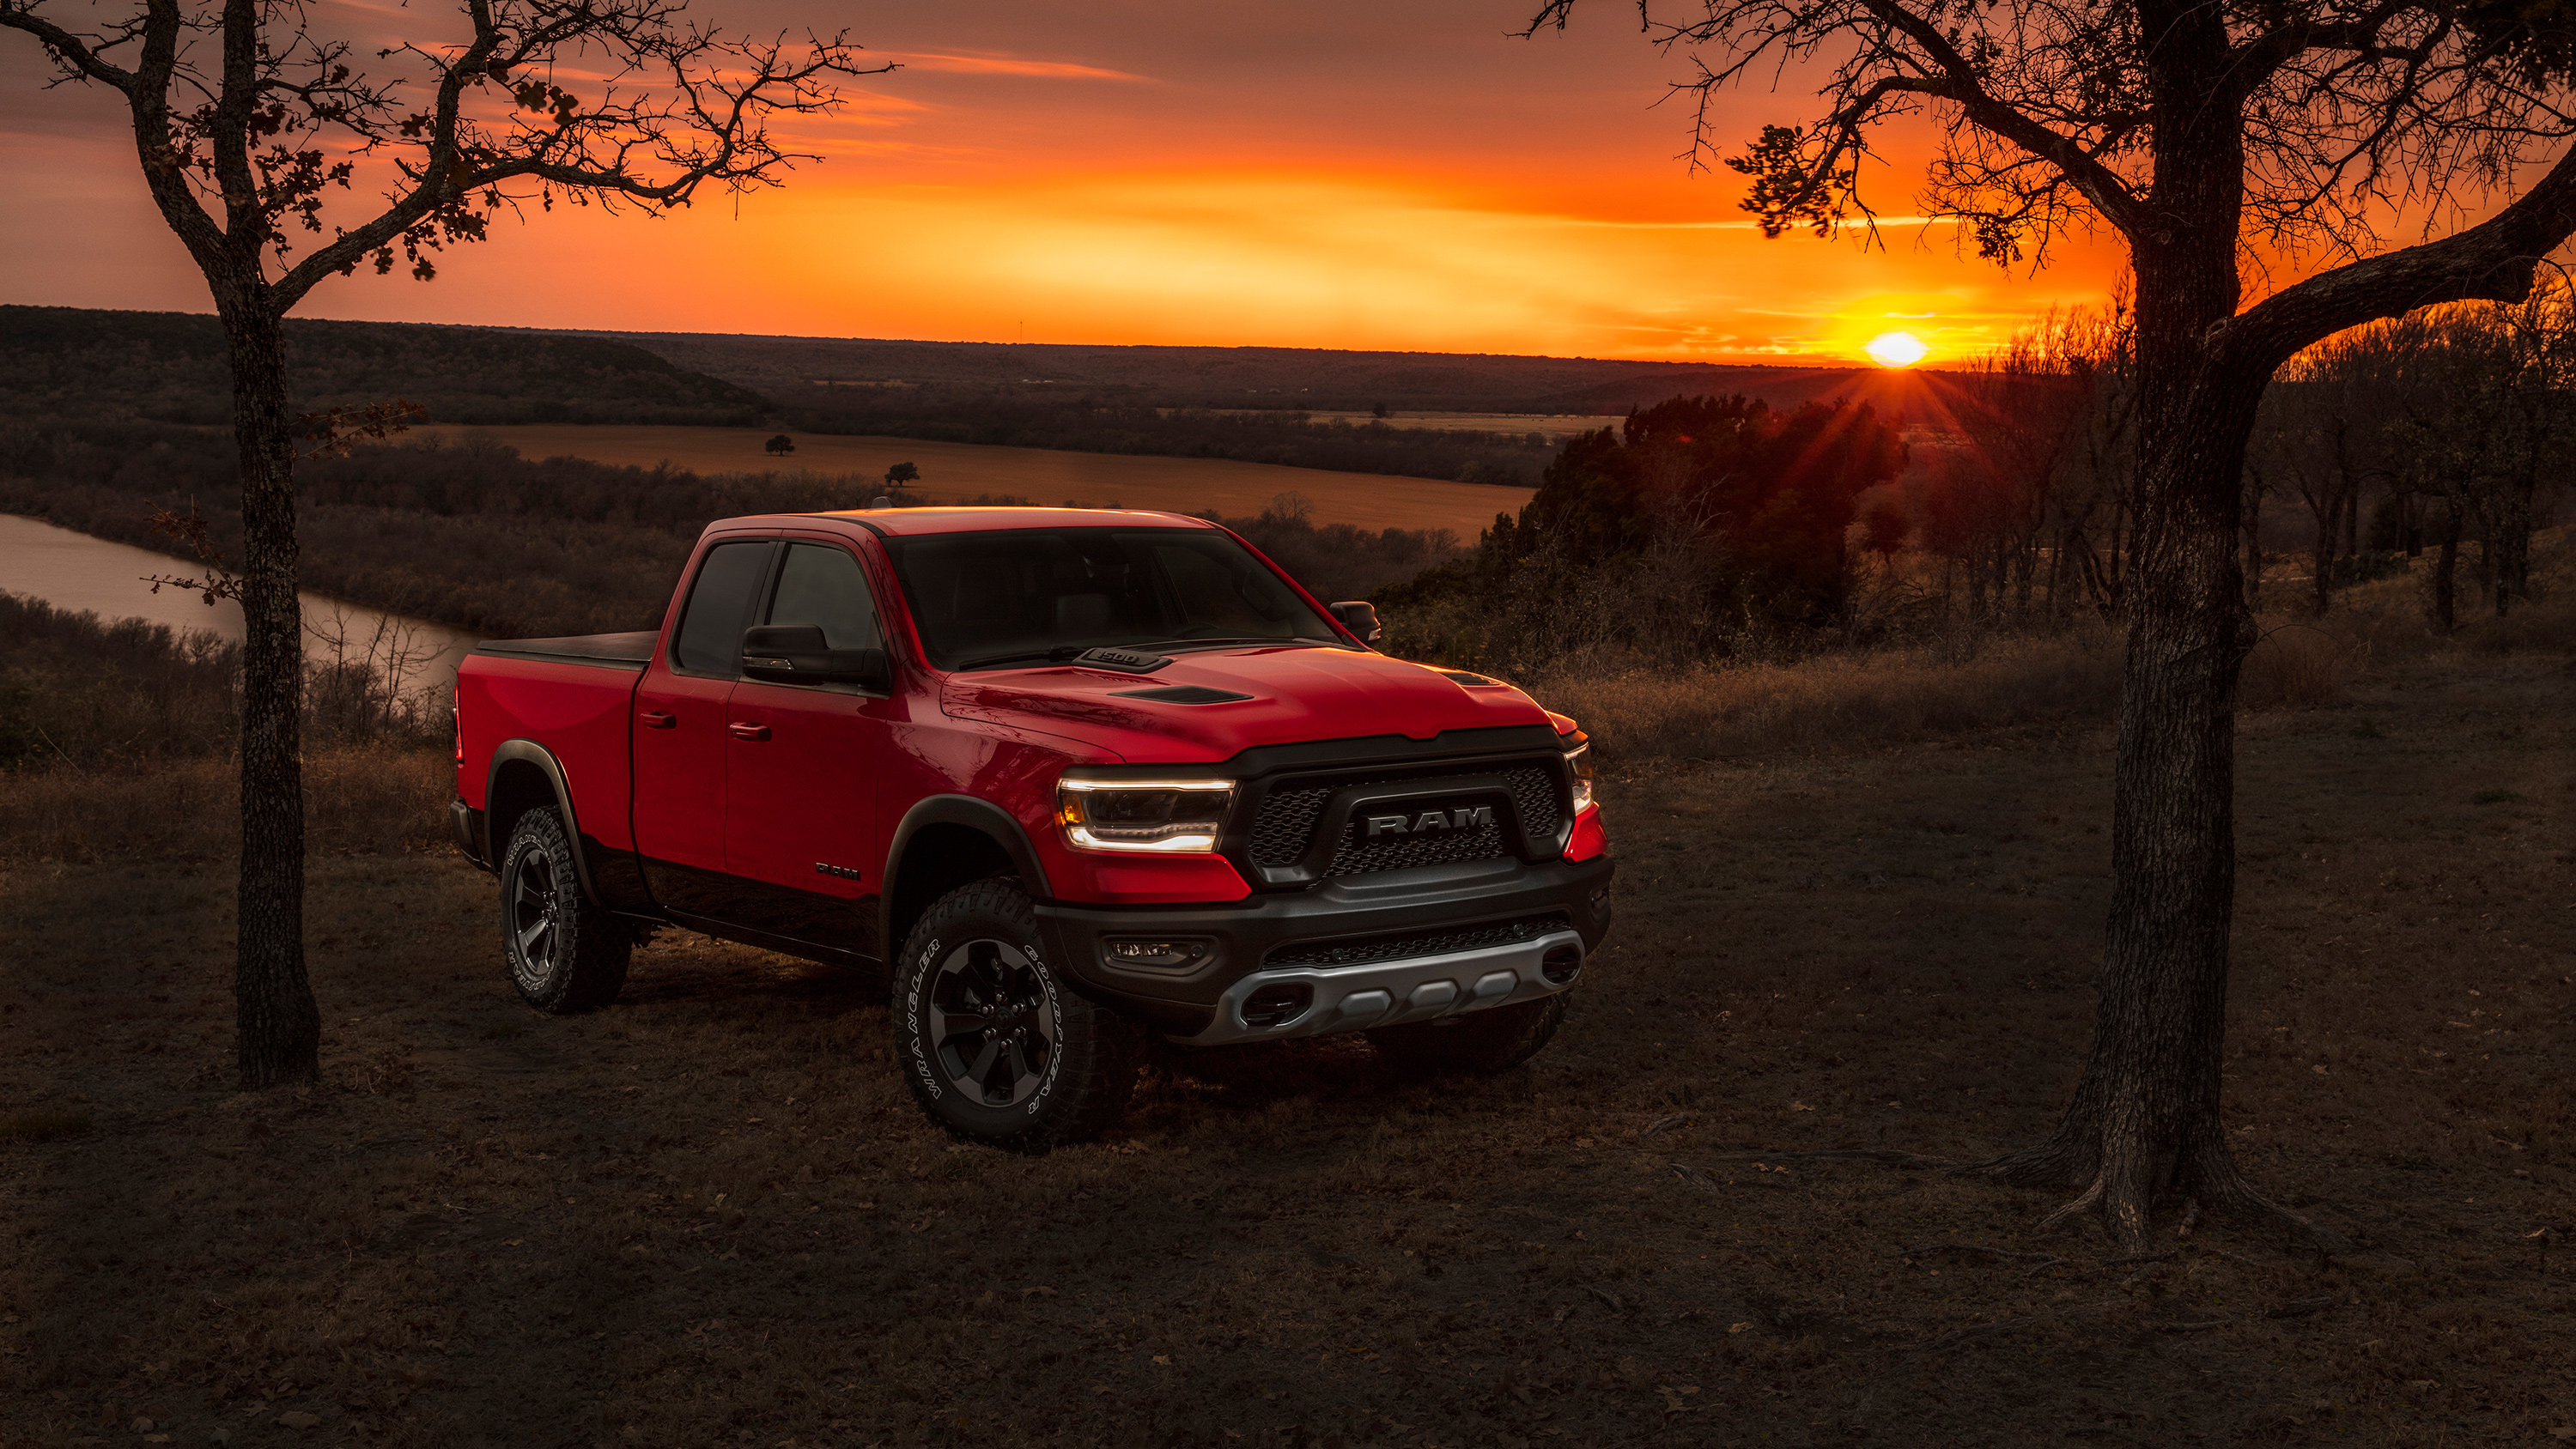 2019 Ram 1500 Rebel Quad Cab 3 Wallpaper HD Car 3000x1688